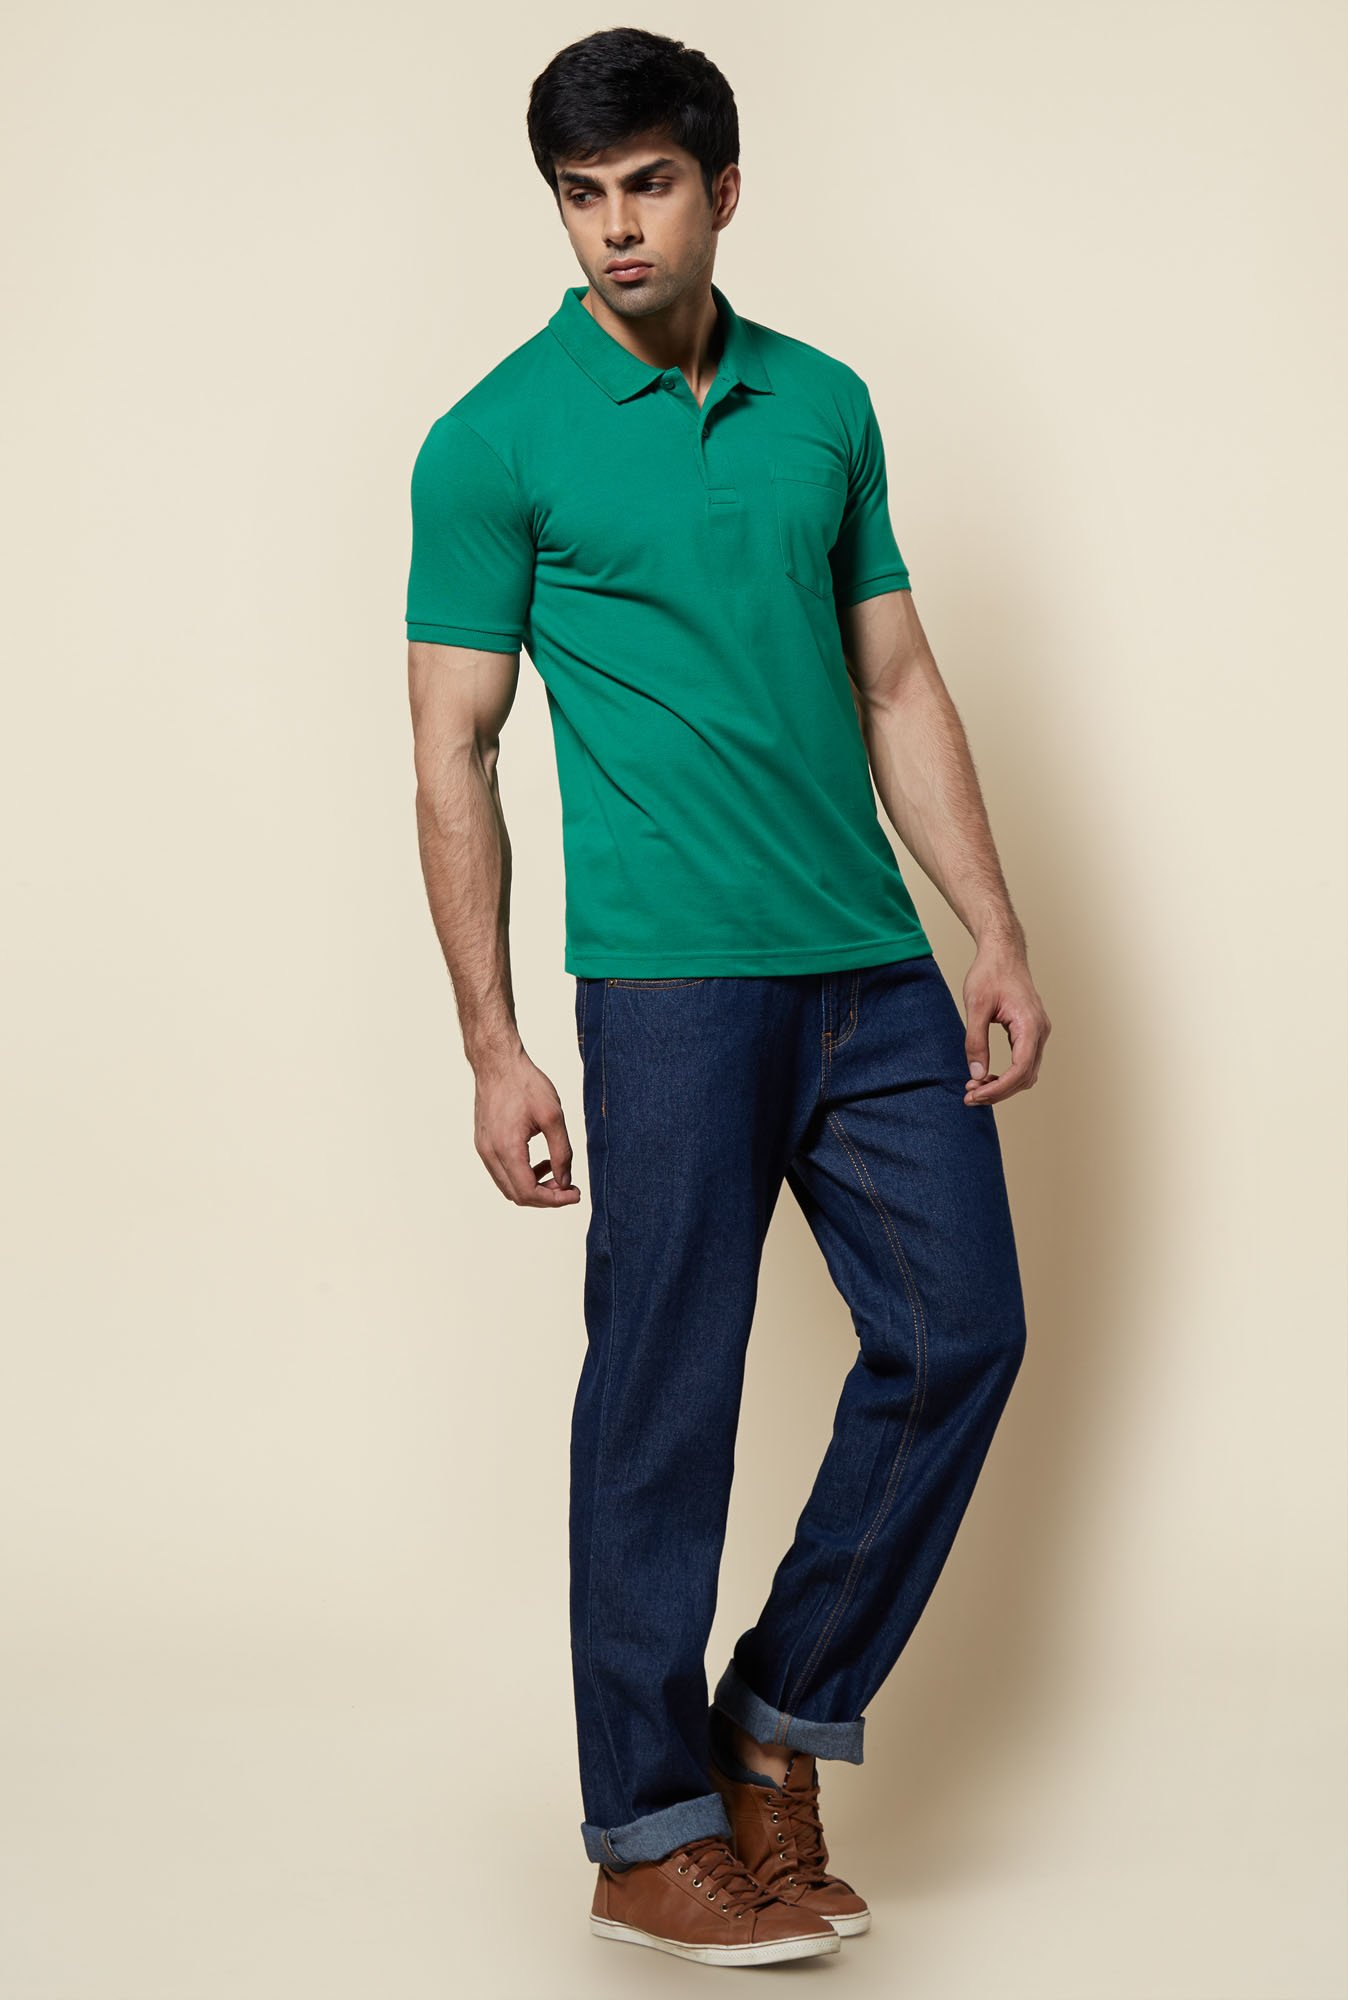 Zudio Teal Solid Polo T Shirt